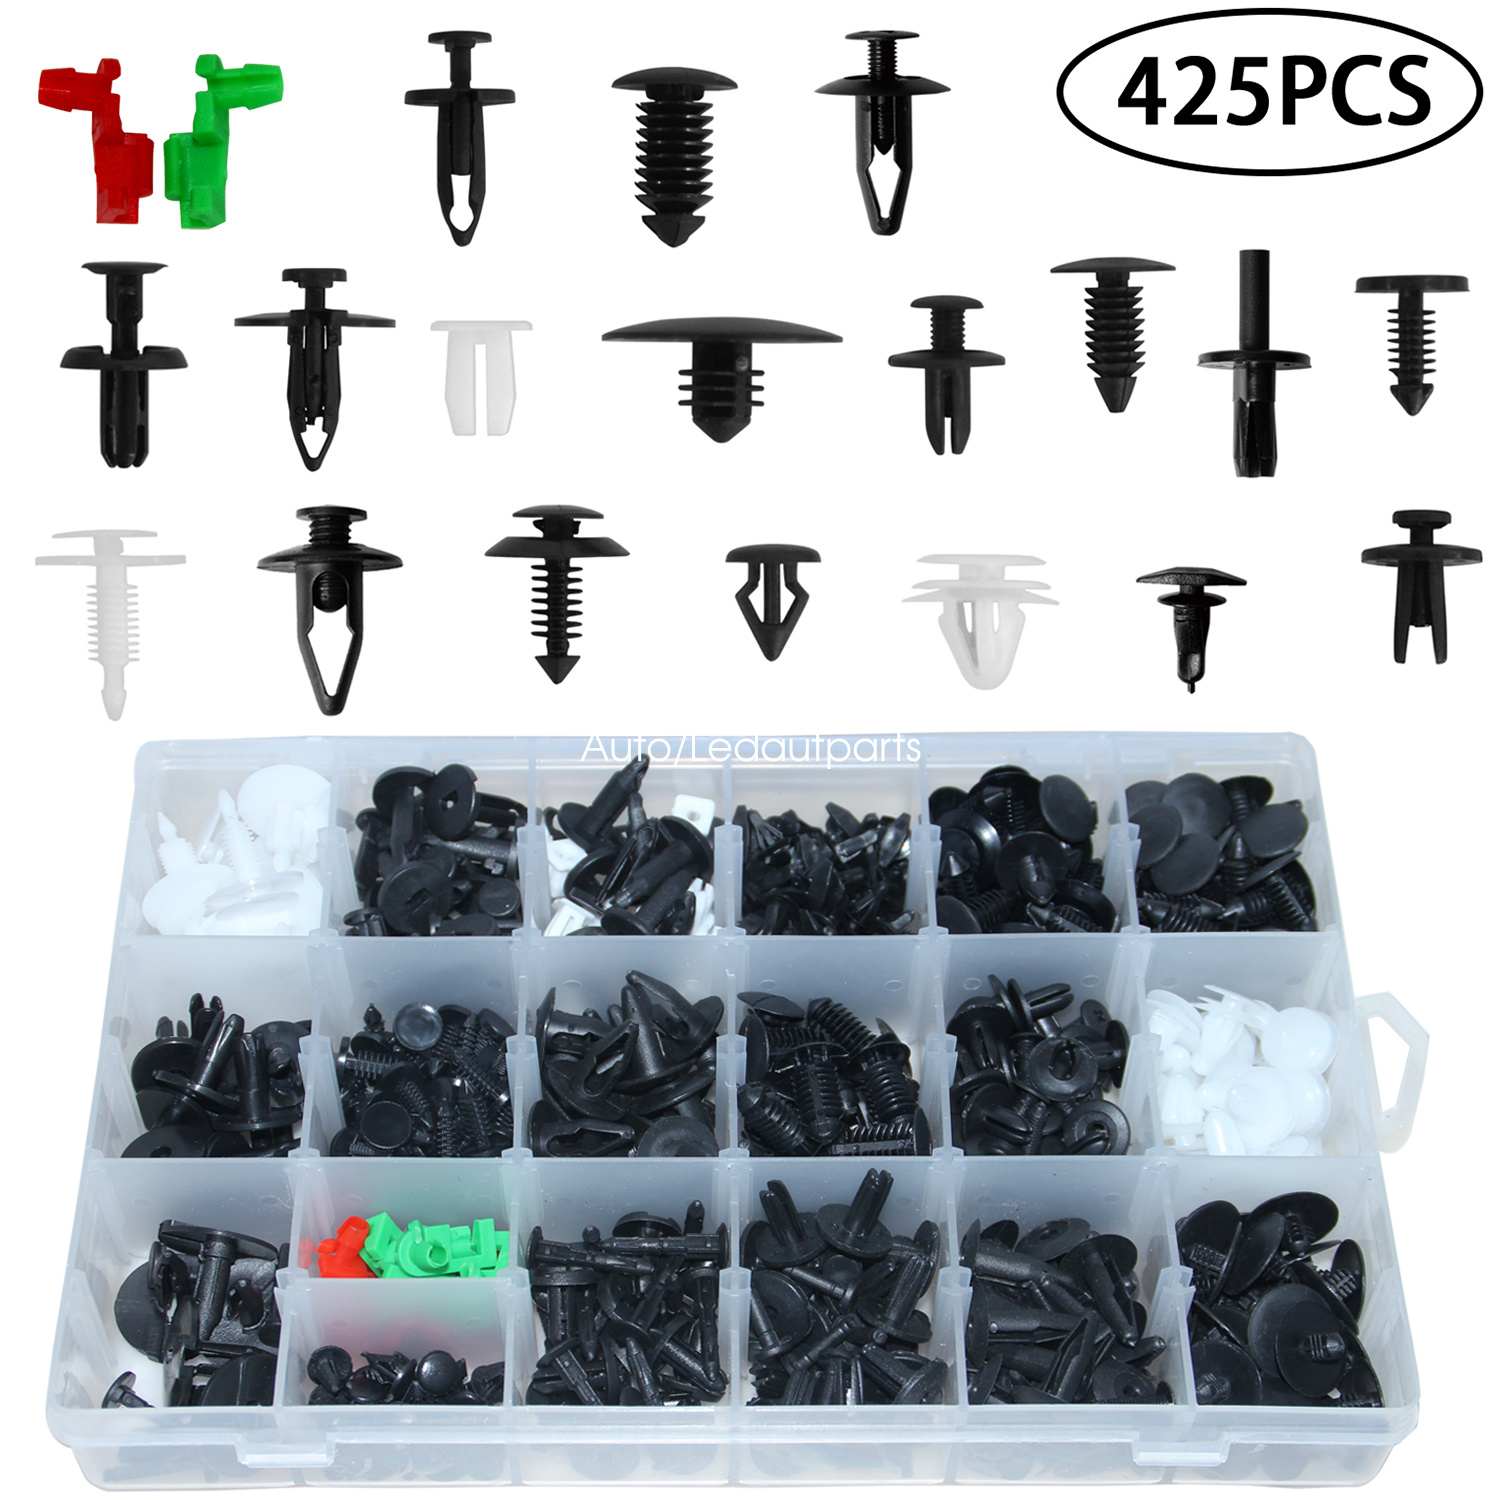 SCITOO 94858299 20Pcs Bumper Pushtype Retainer Clips Kit Car Fastener Rivet Door Trim Clips fit for GM Toyota Honda Ford Chrysler